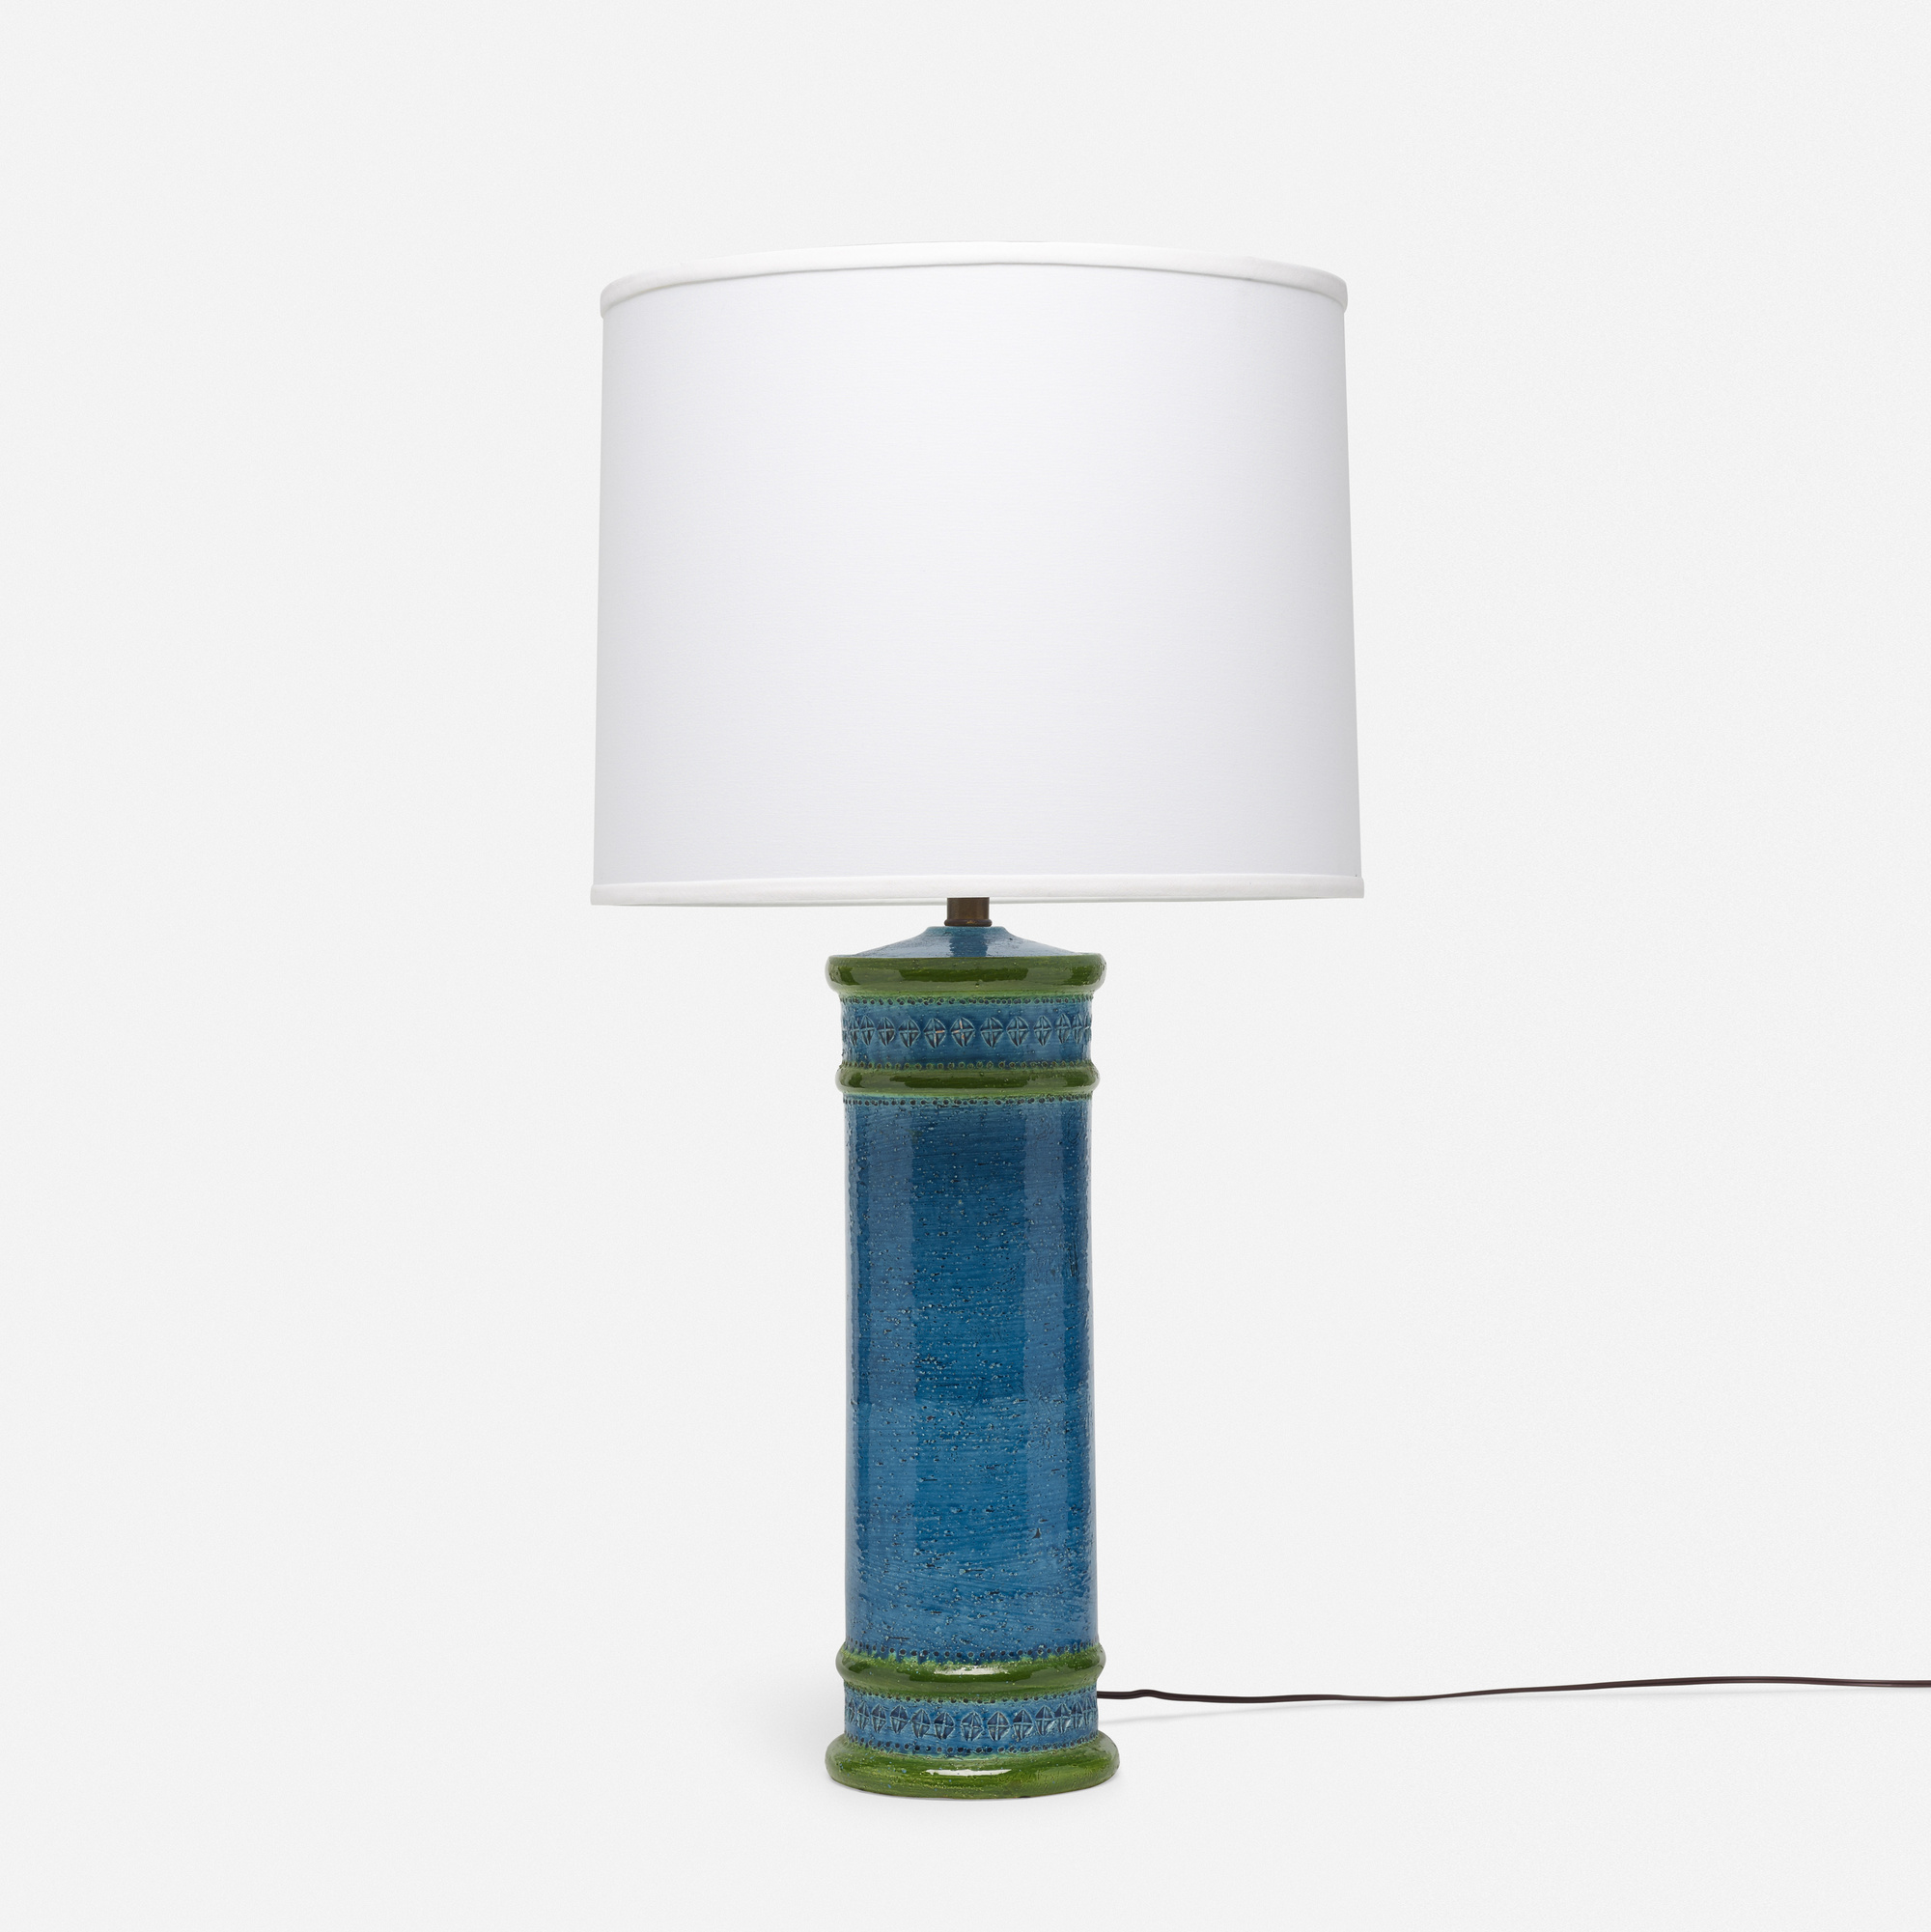 403: Bitossi / table lamp (1 of 1)